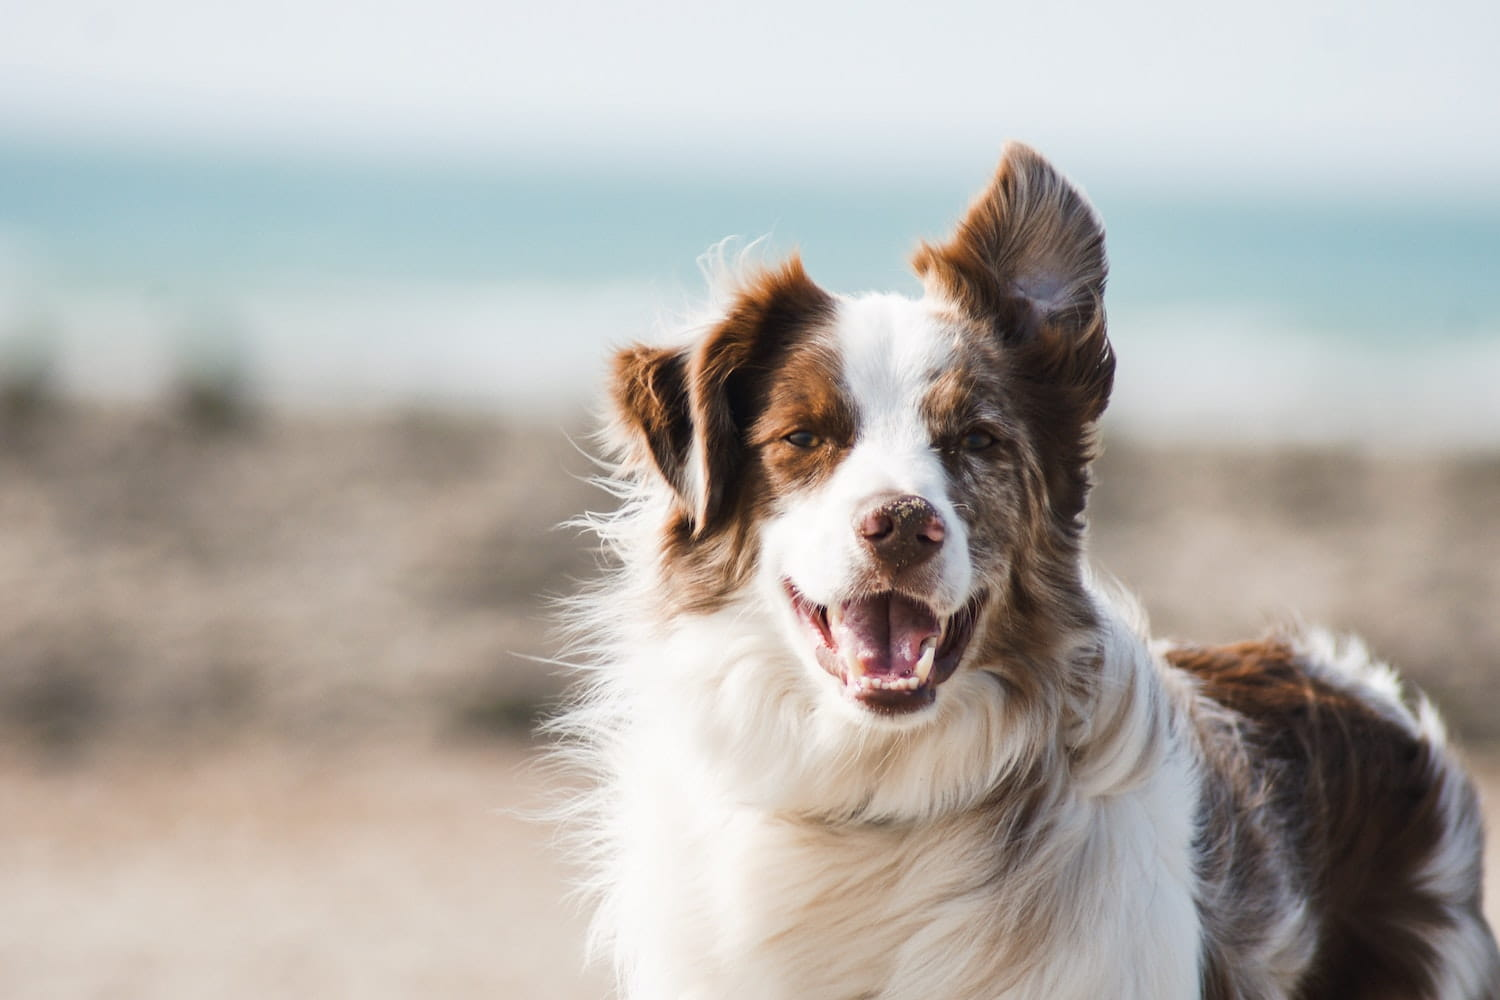 Brown and white dog by the sea